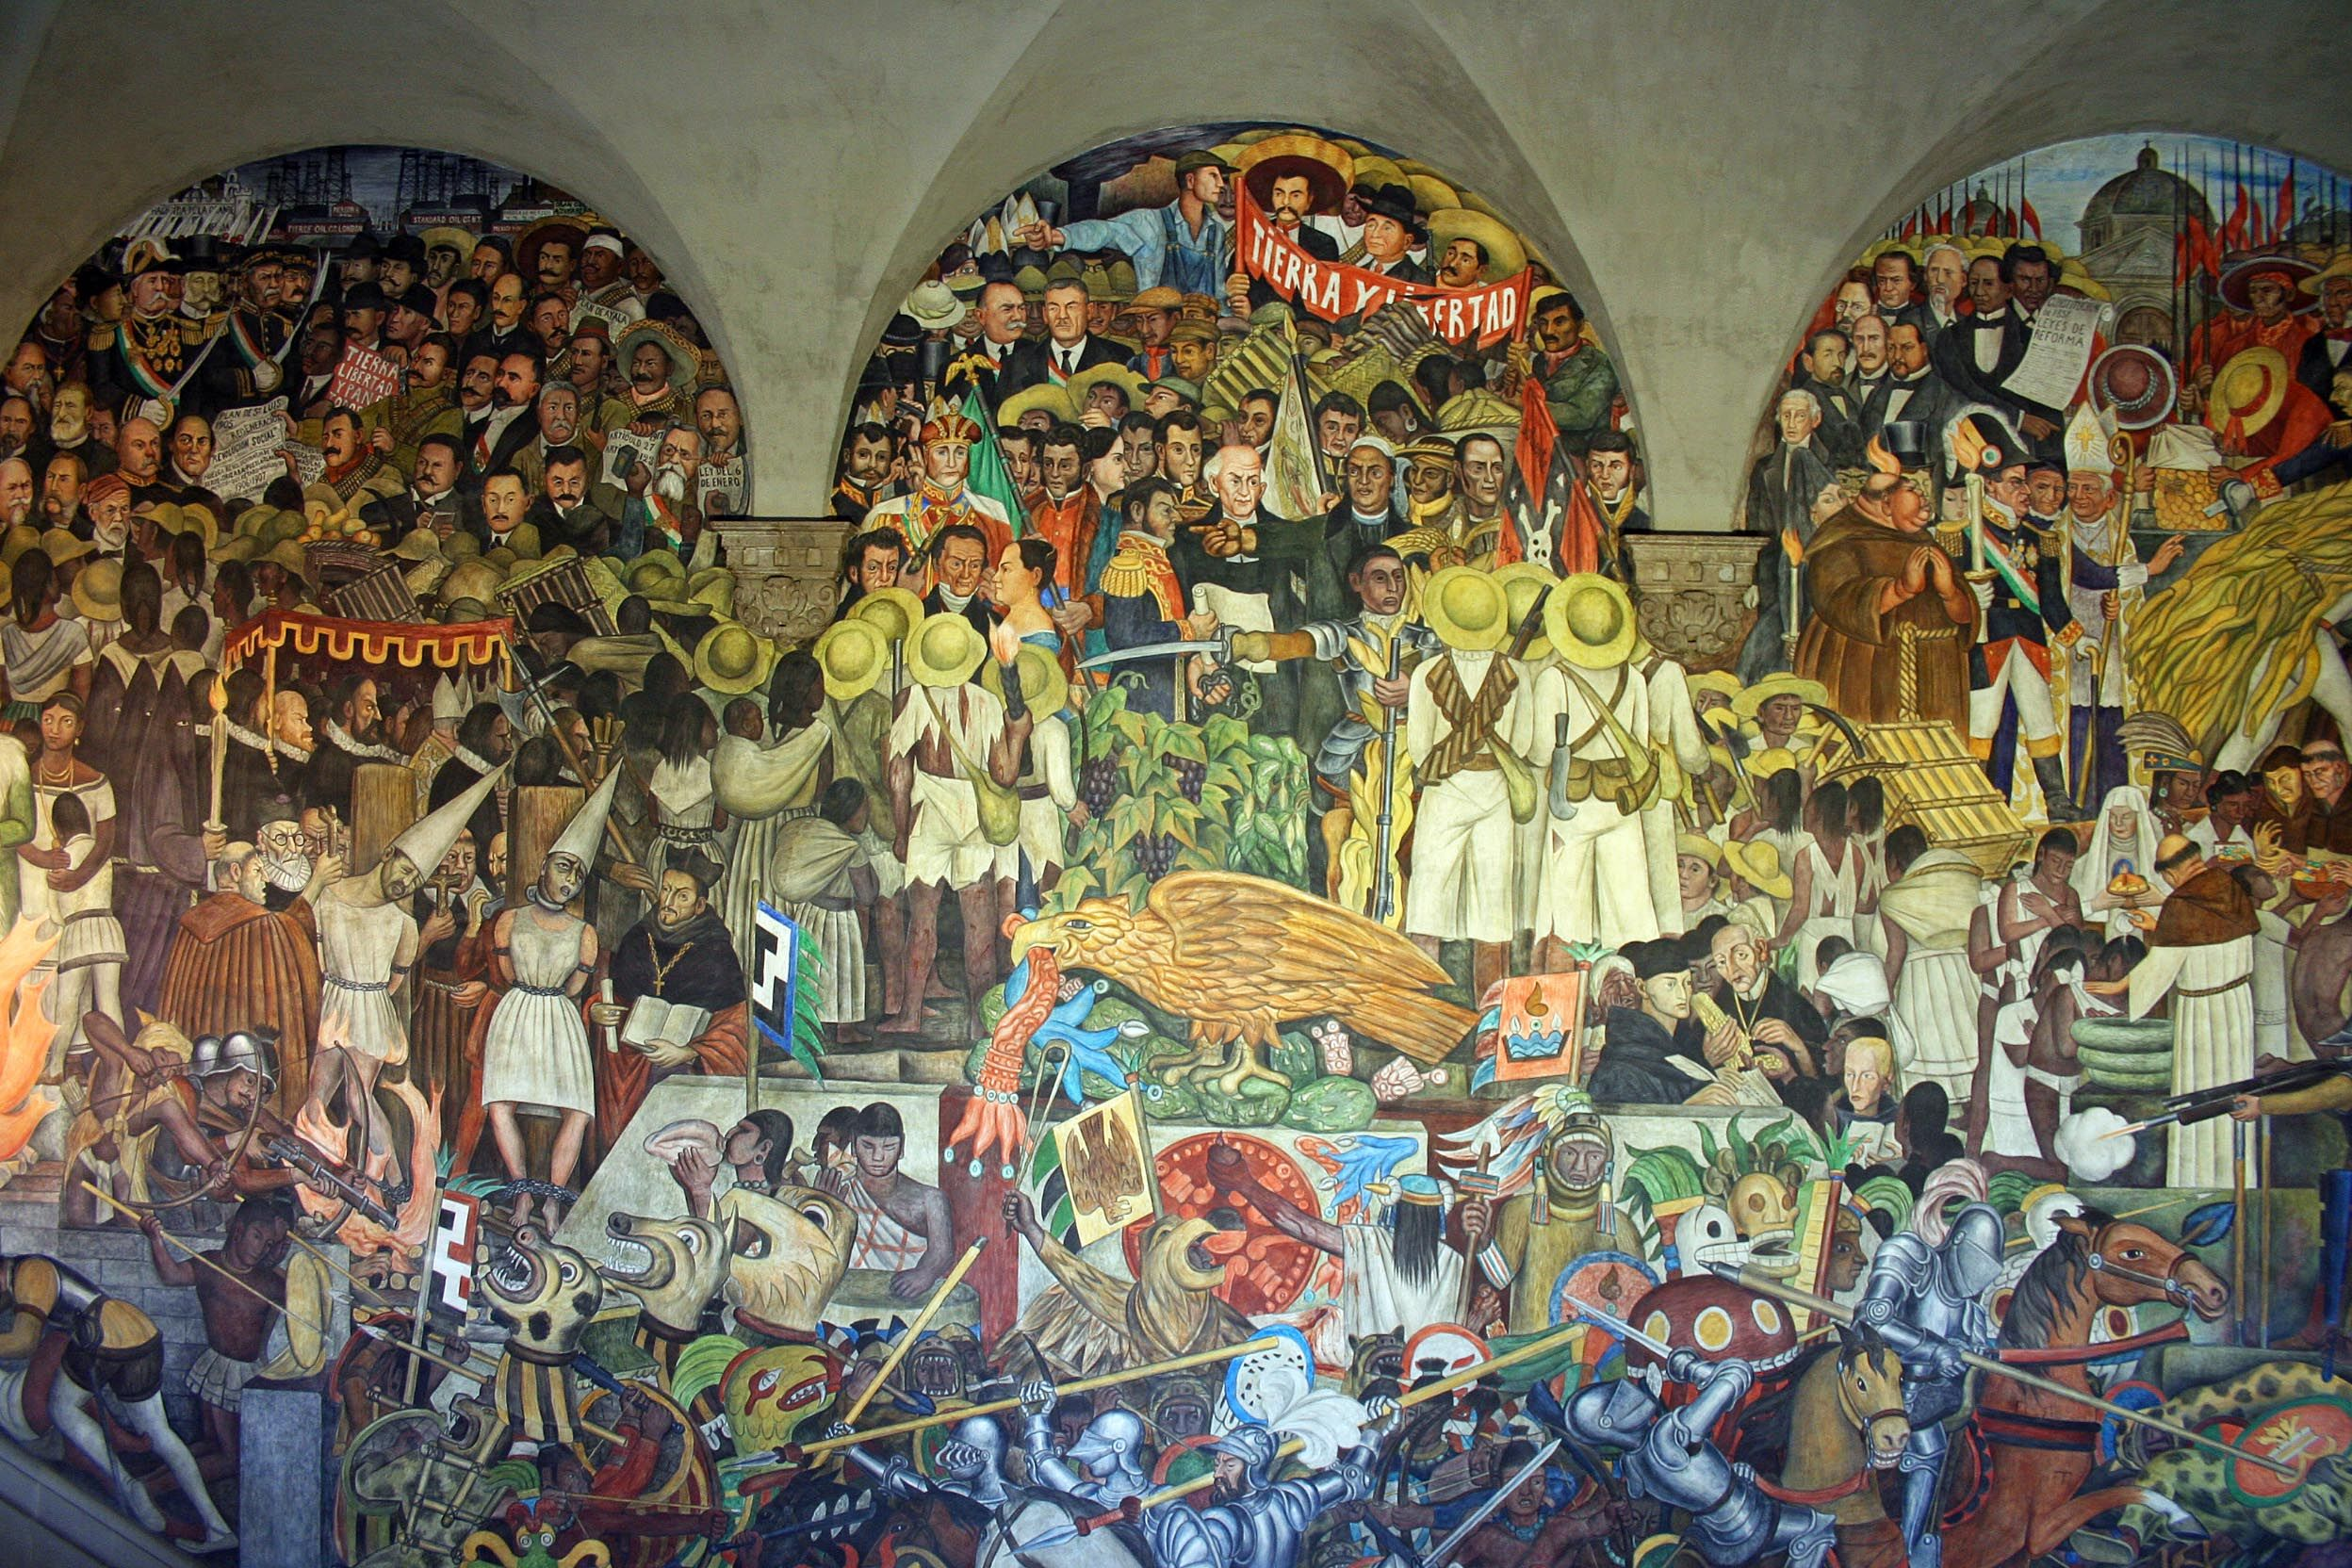 Diego rivera mural mexicano historia de mexico forma de for Diego rivera mural paintings